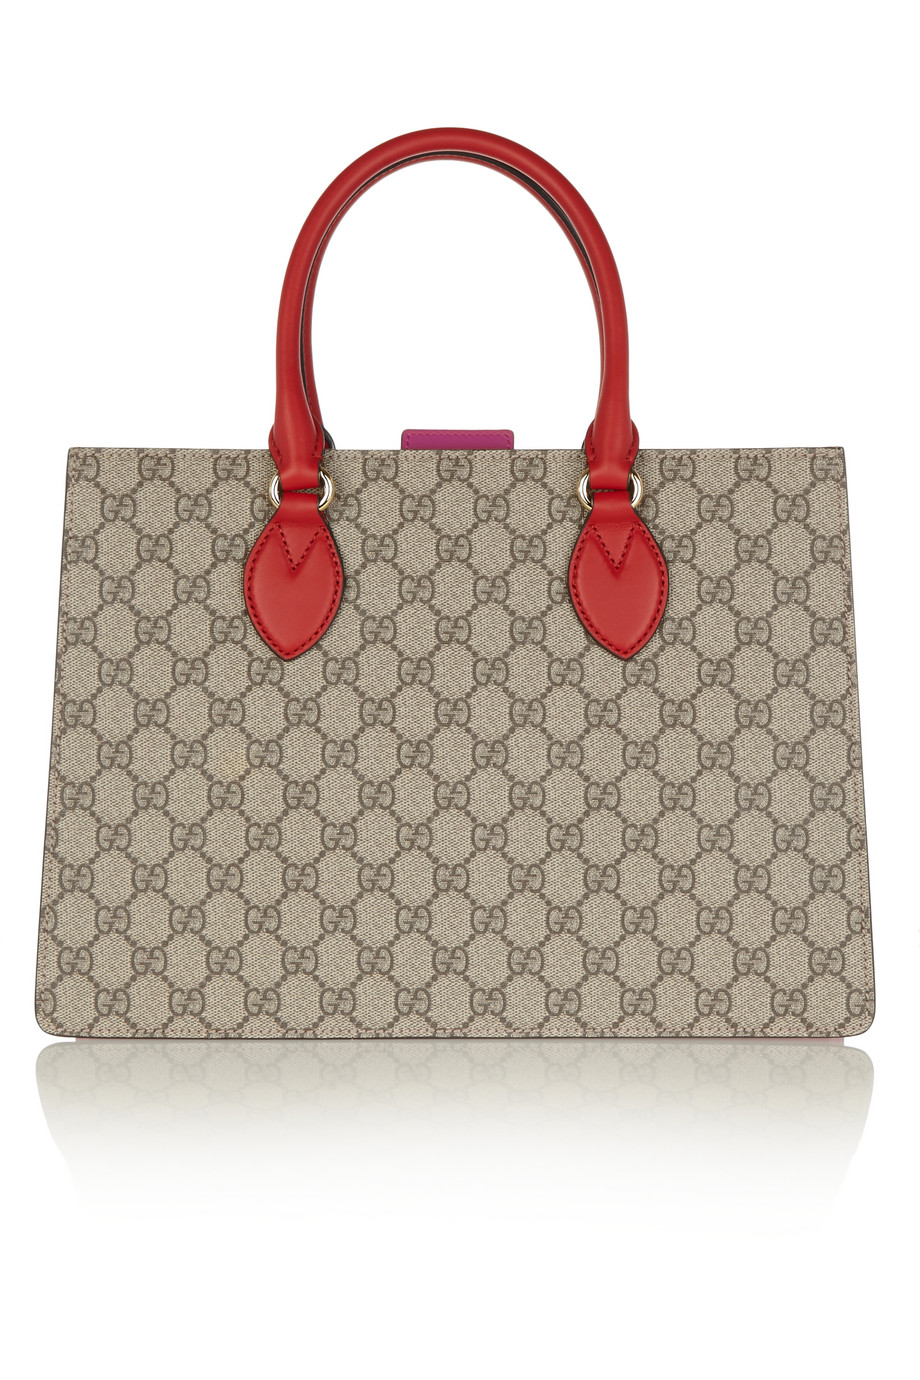 Gucci Linea A Small Leather-Trimmed Coated Canvas Tote, Beige, Women's